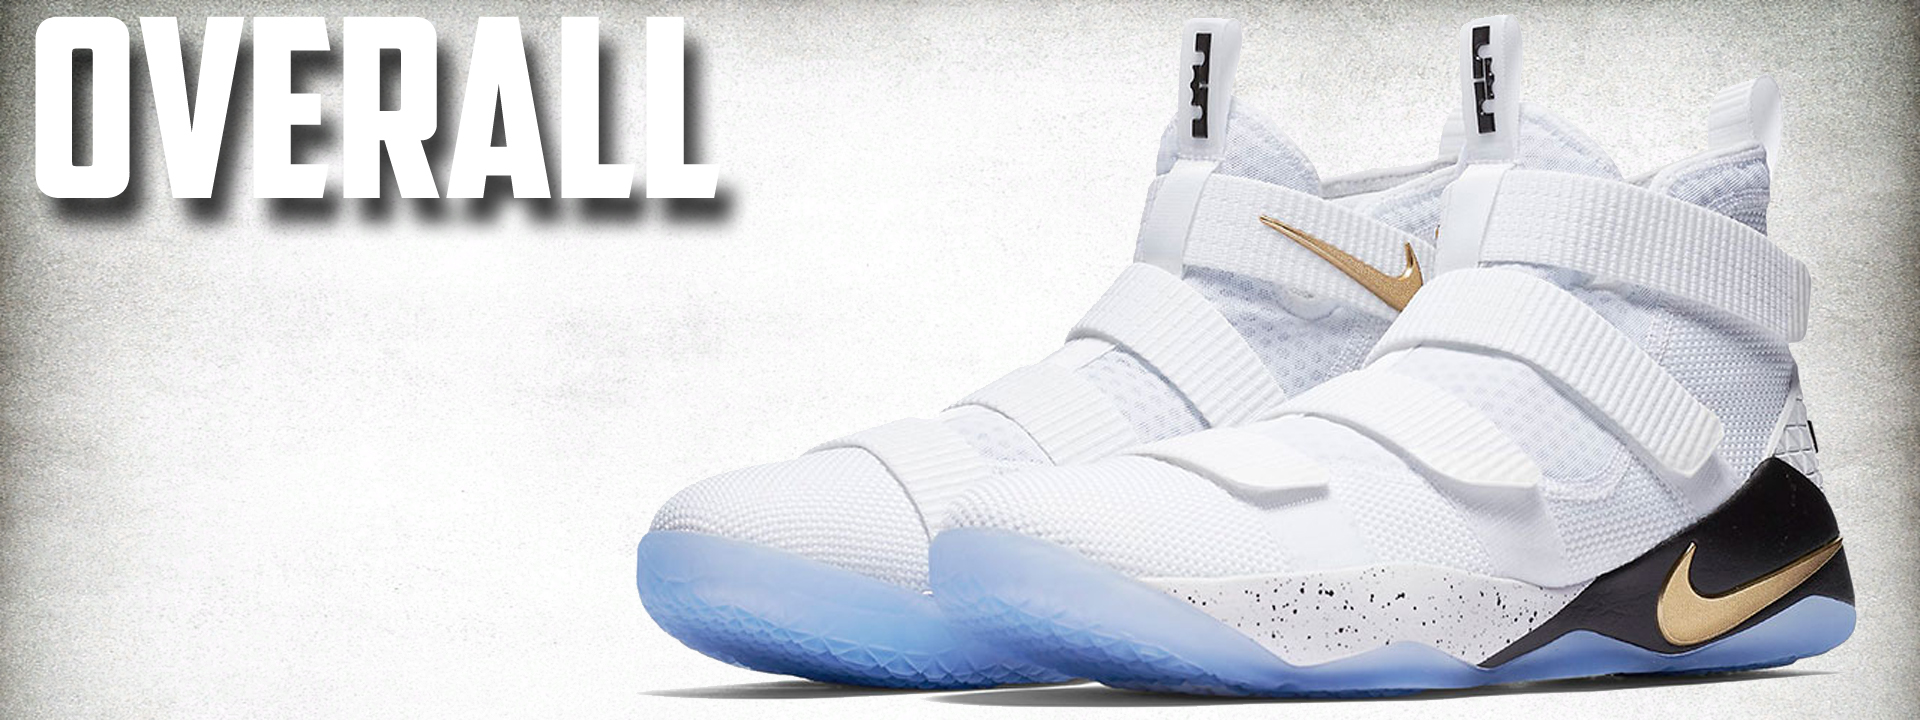 Nike LeBron Soldier 11 Performance Review overall